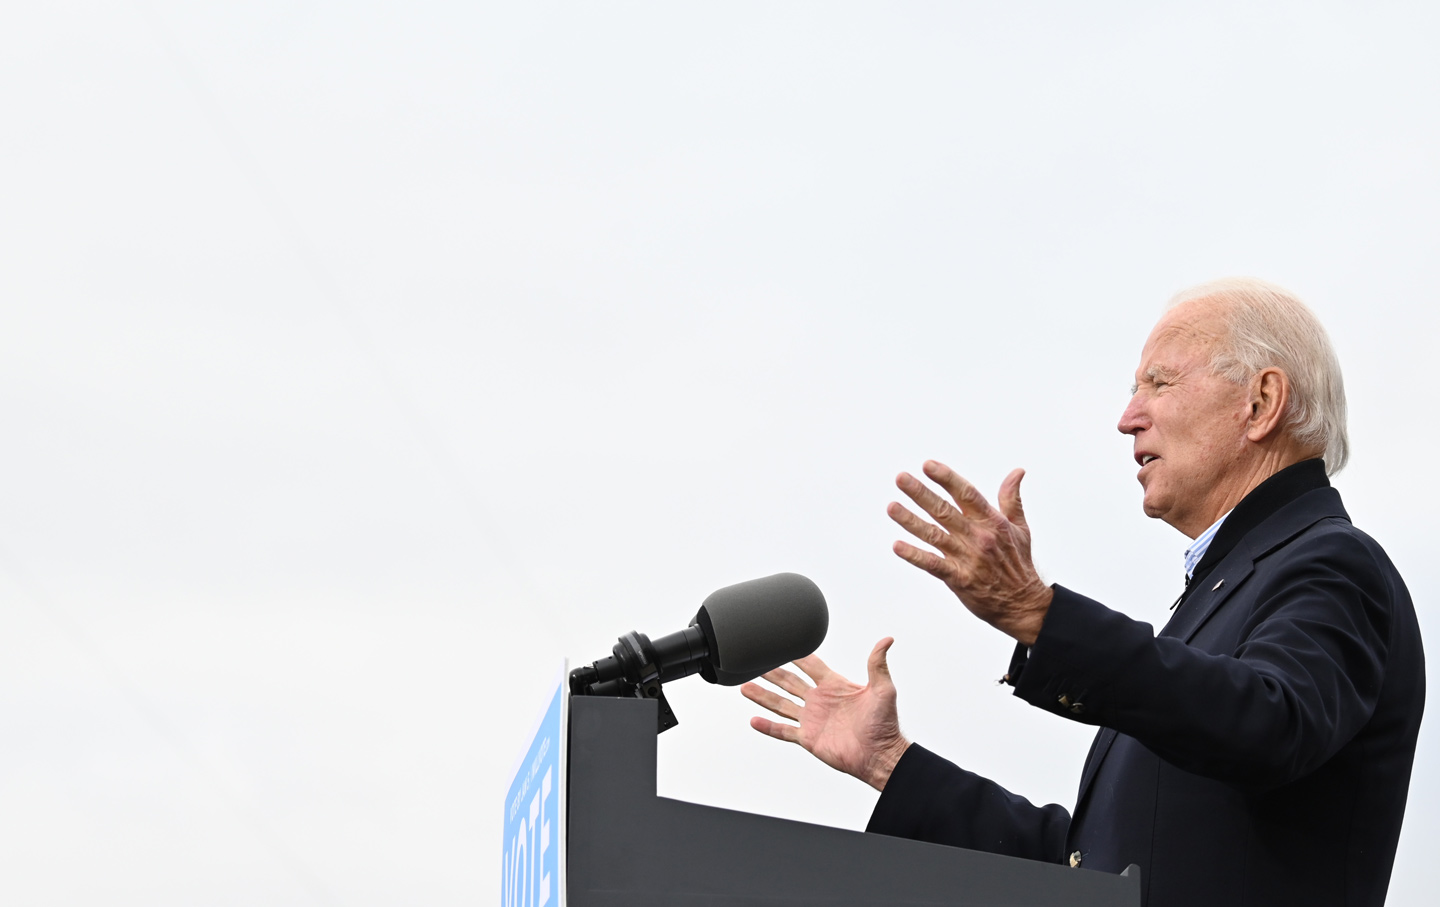 biden-podium-hands-georgia-gty-img